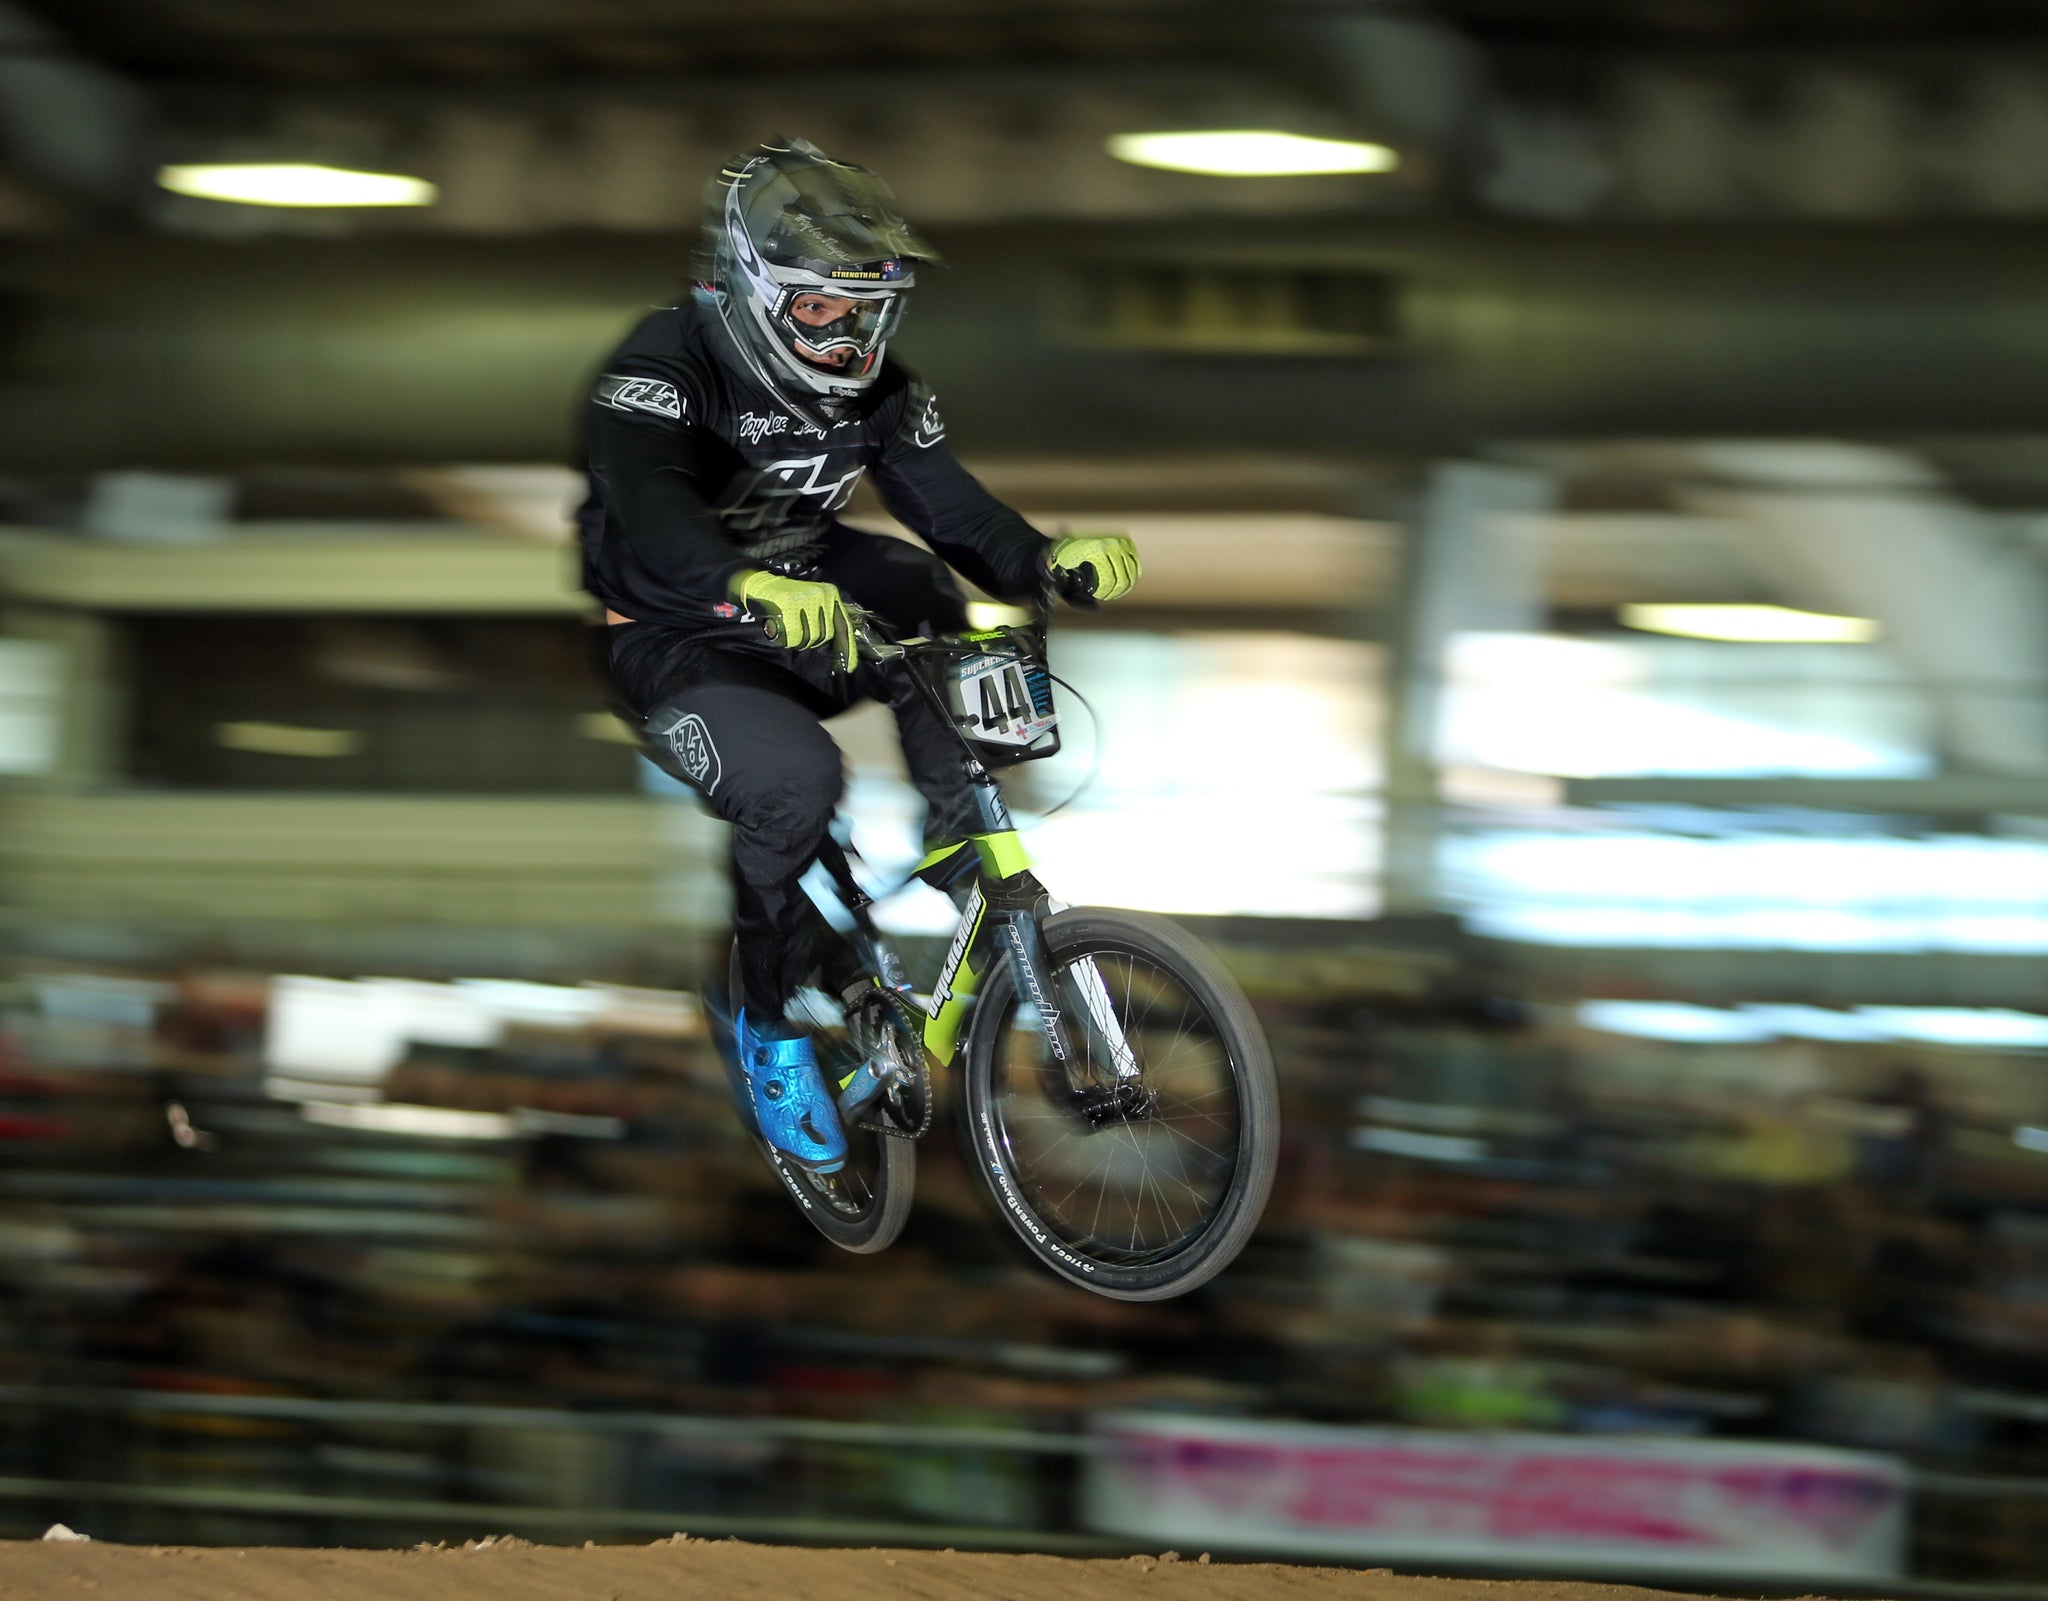 Supercross BMX Elite Men - Anthony Dean having soem fun at the #greatestraceonearth